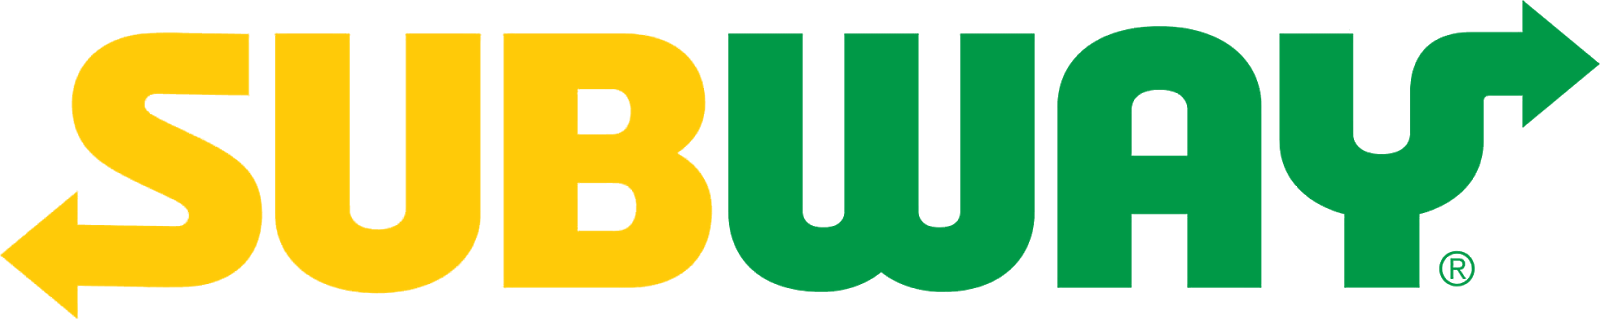 subway launches refreshed logo png #4302